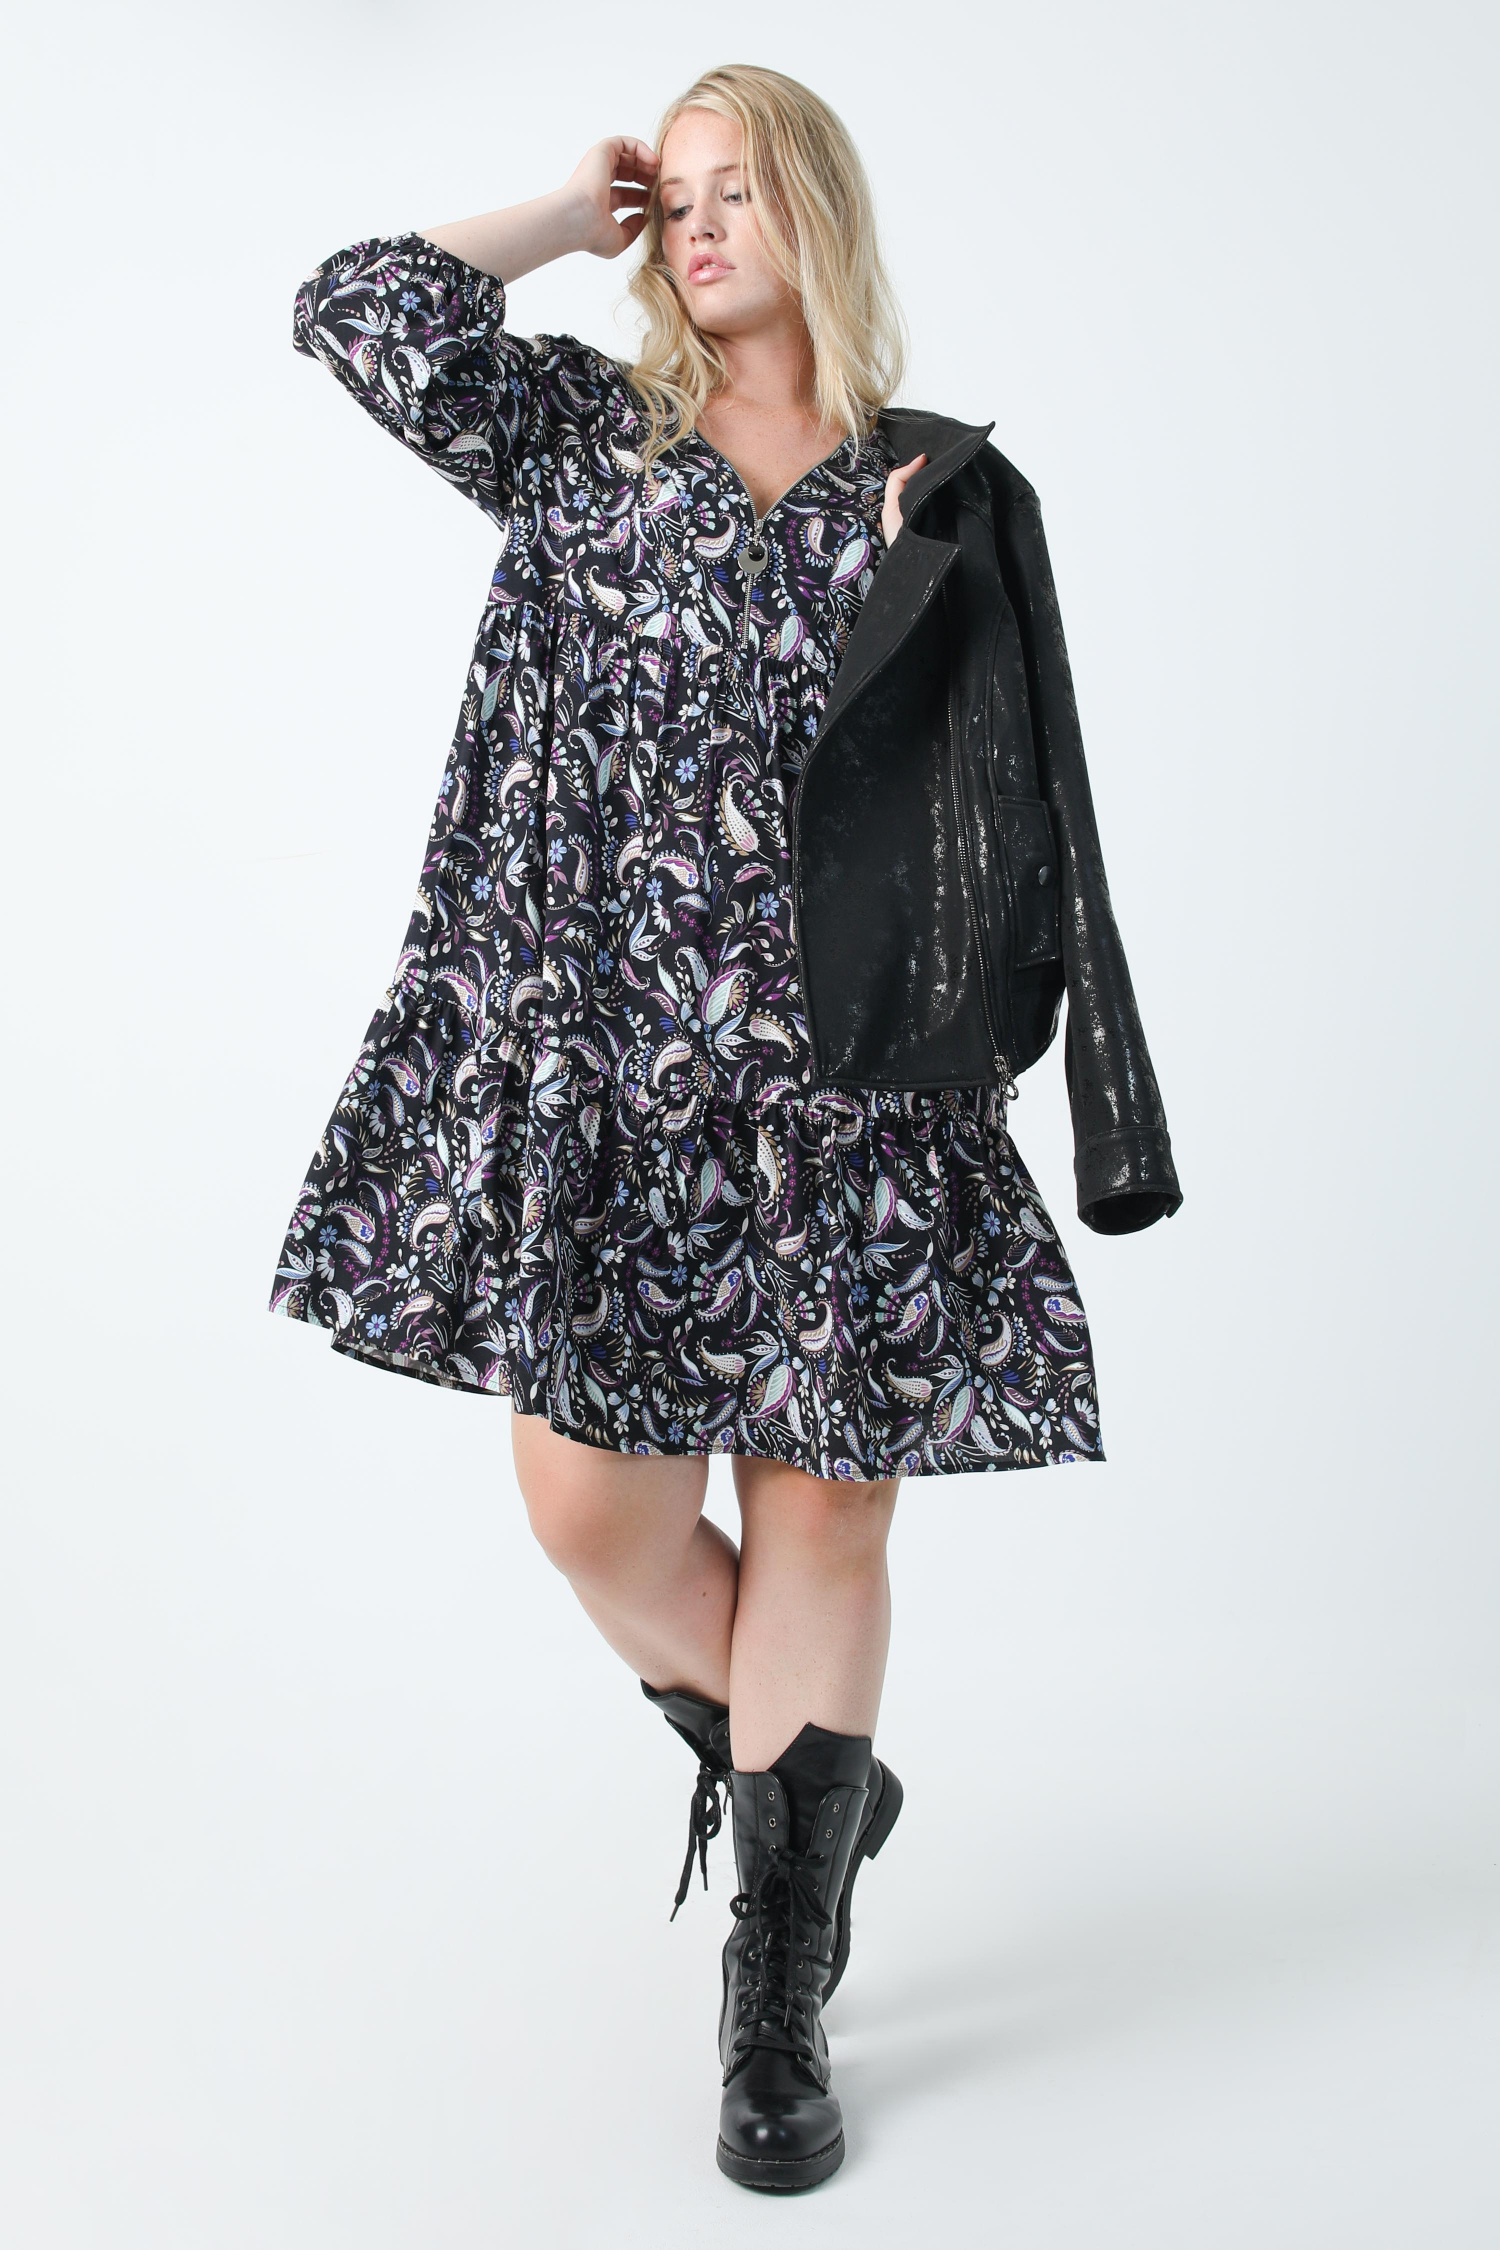 Mid-length printed dress with zipped neckline in oeko-tex fabric (shipping September 5/10)